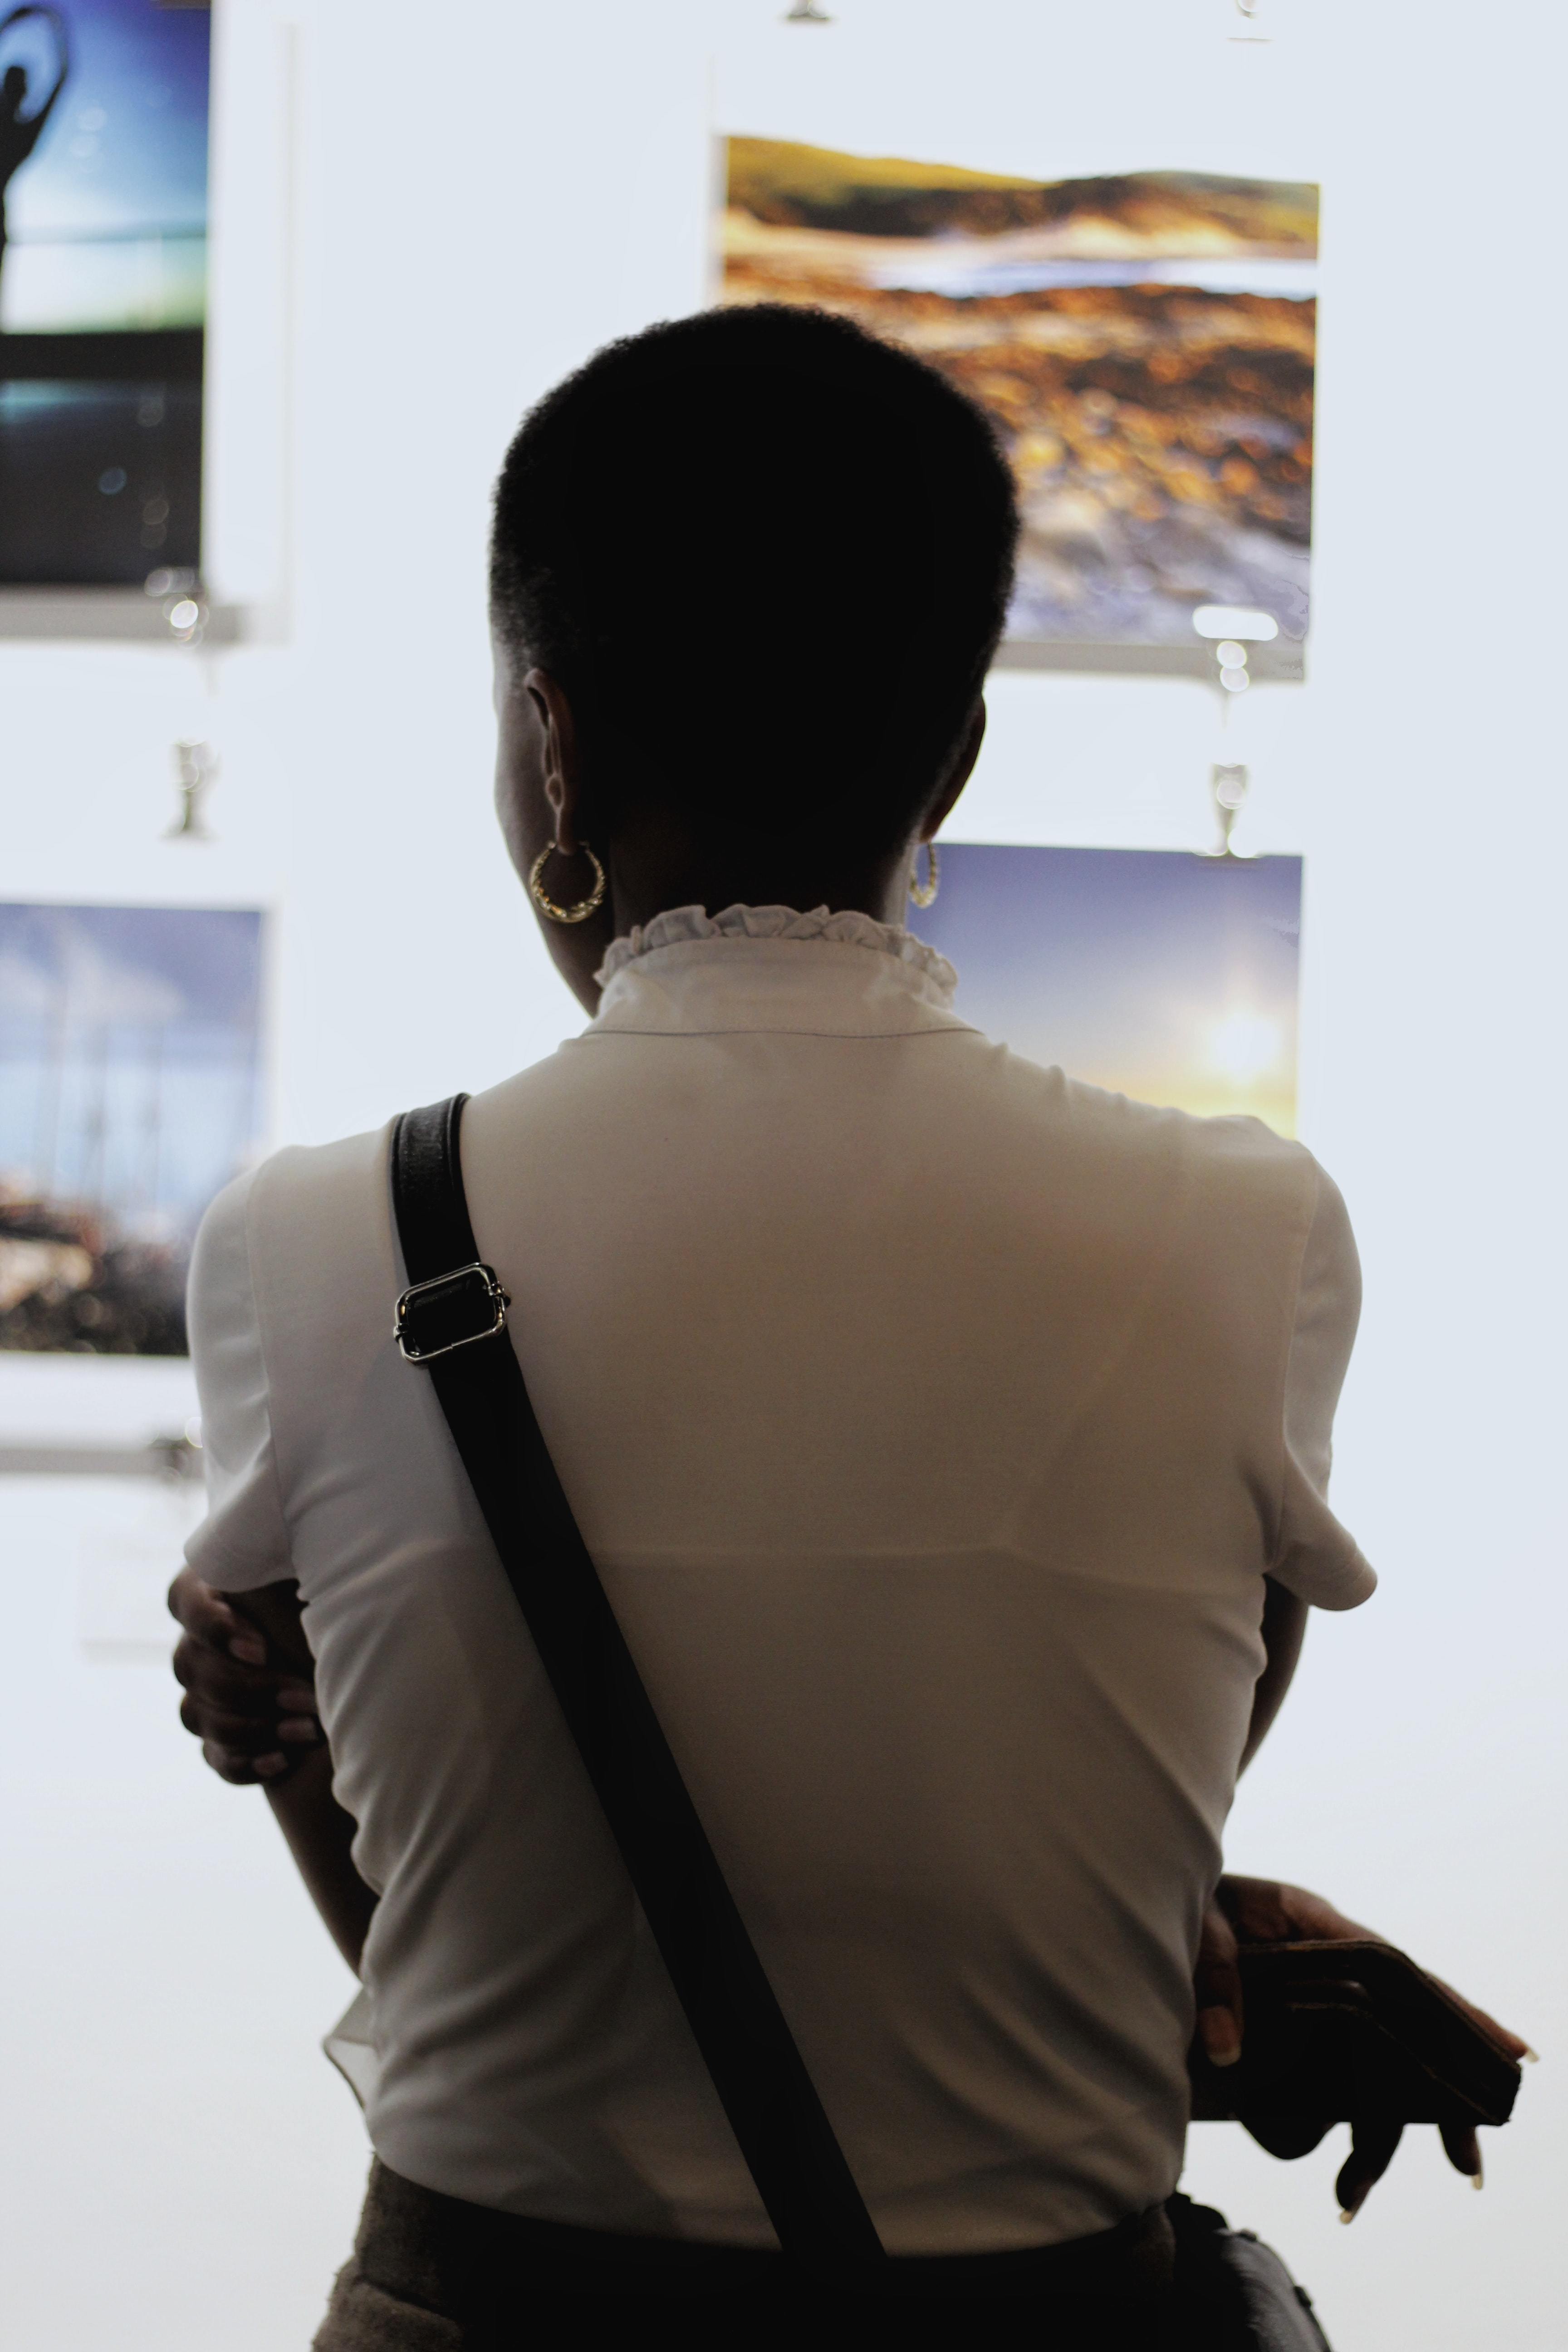 shallow focus photography of woman crossing her both arms while looking images in wall